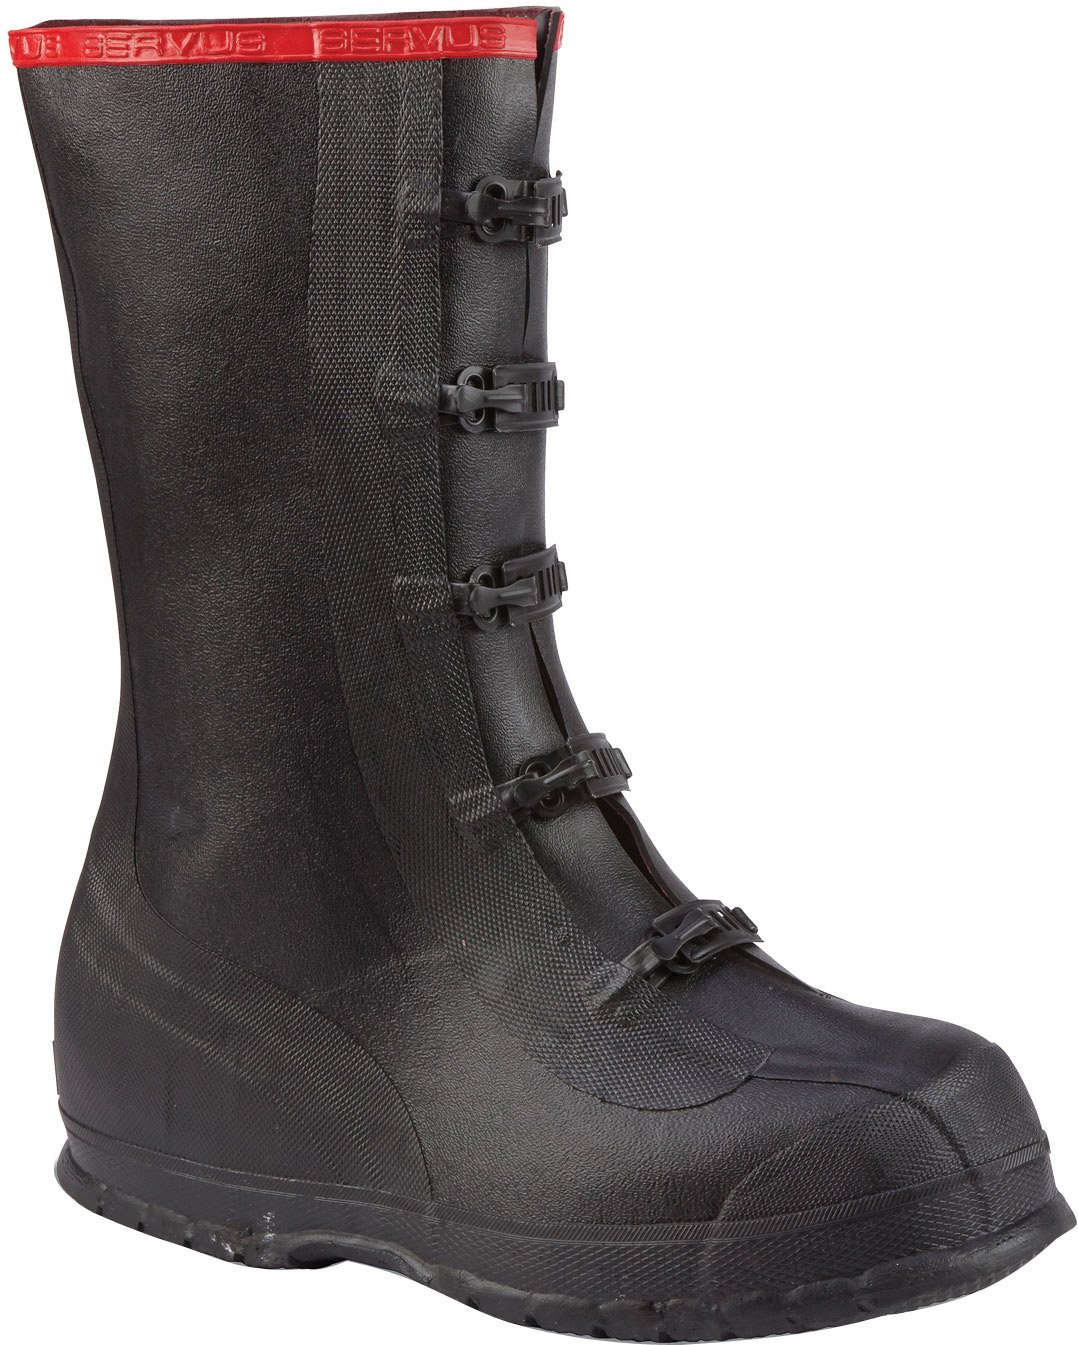 Ranger 15 Rubber Supersized Men's Overboots, Black (T369) Sperian Protection Group T369-BLM-160